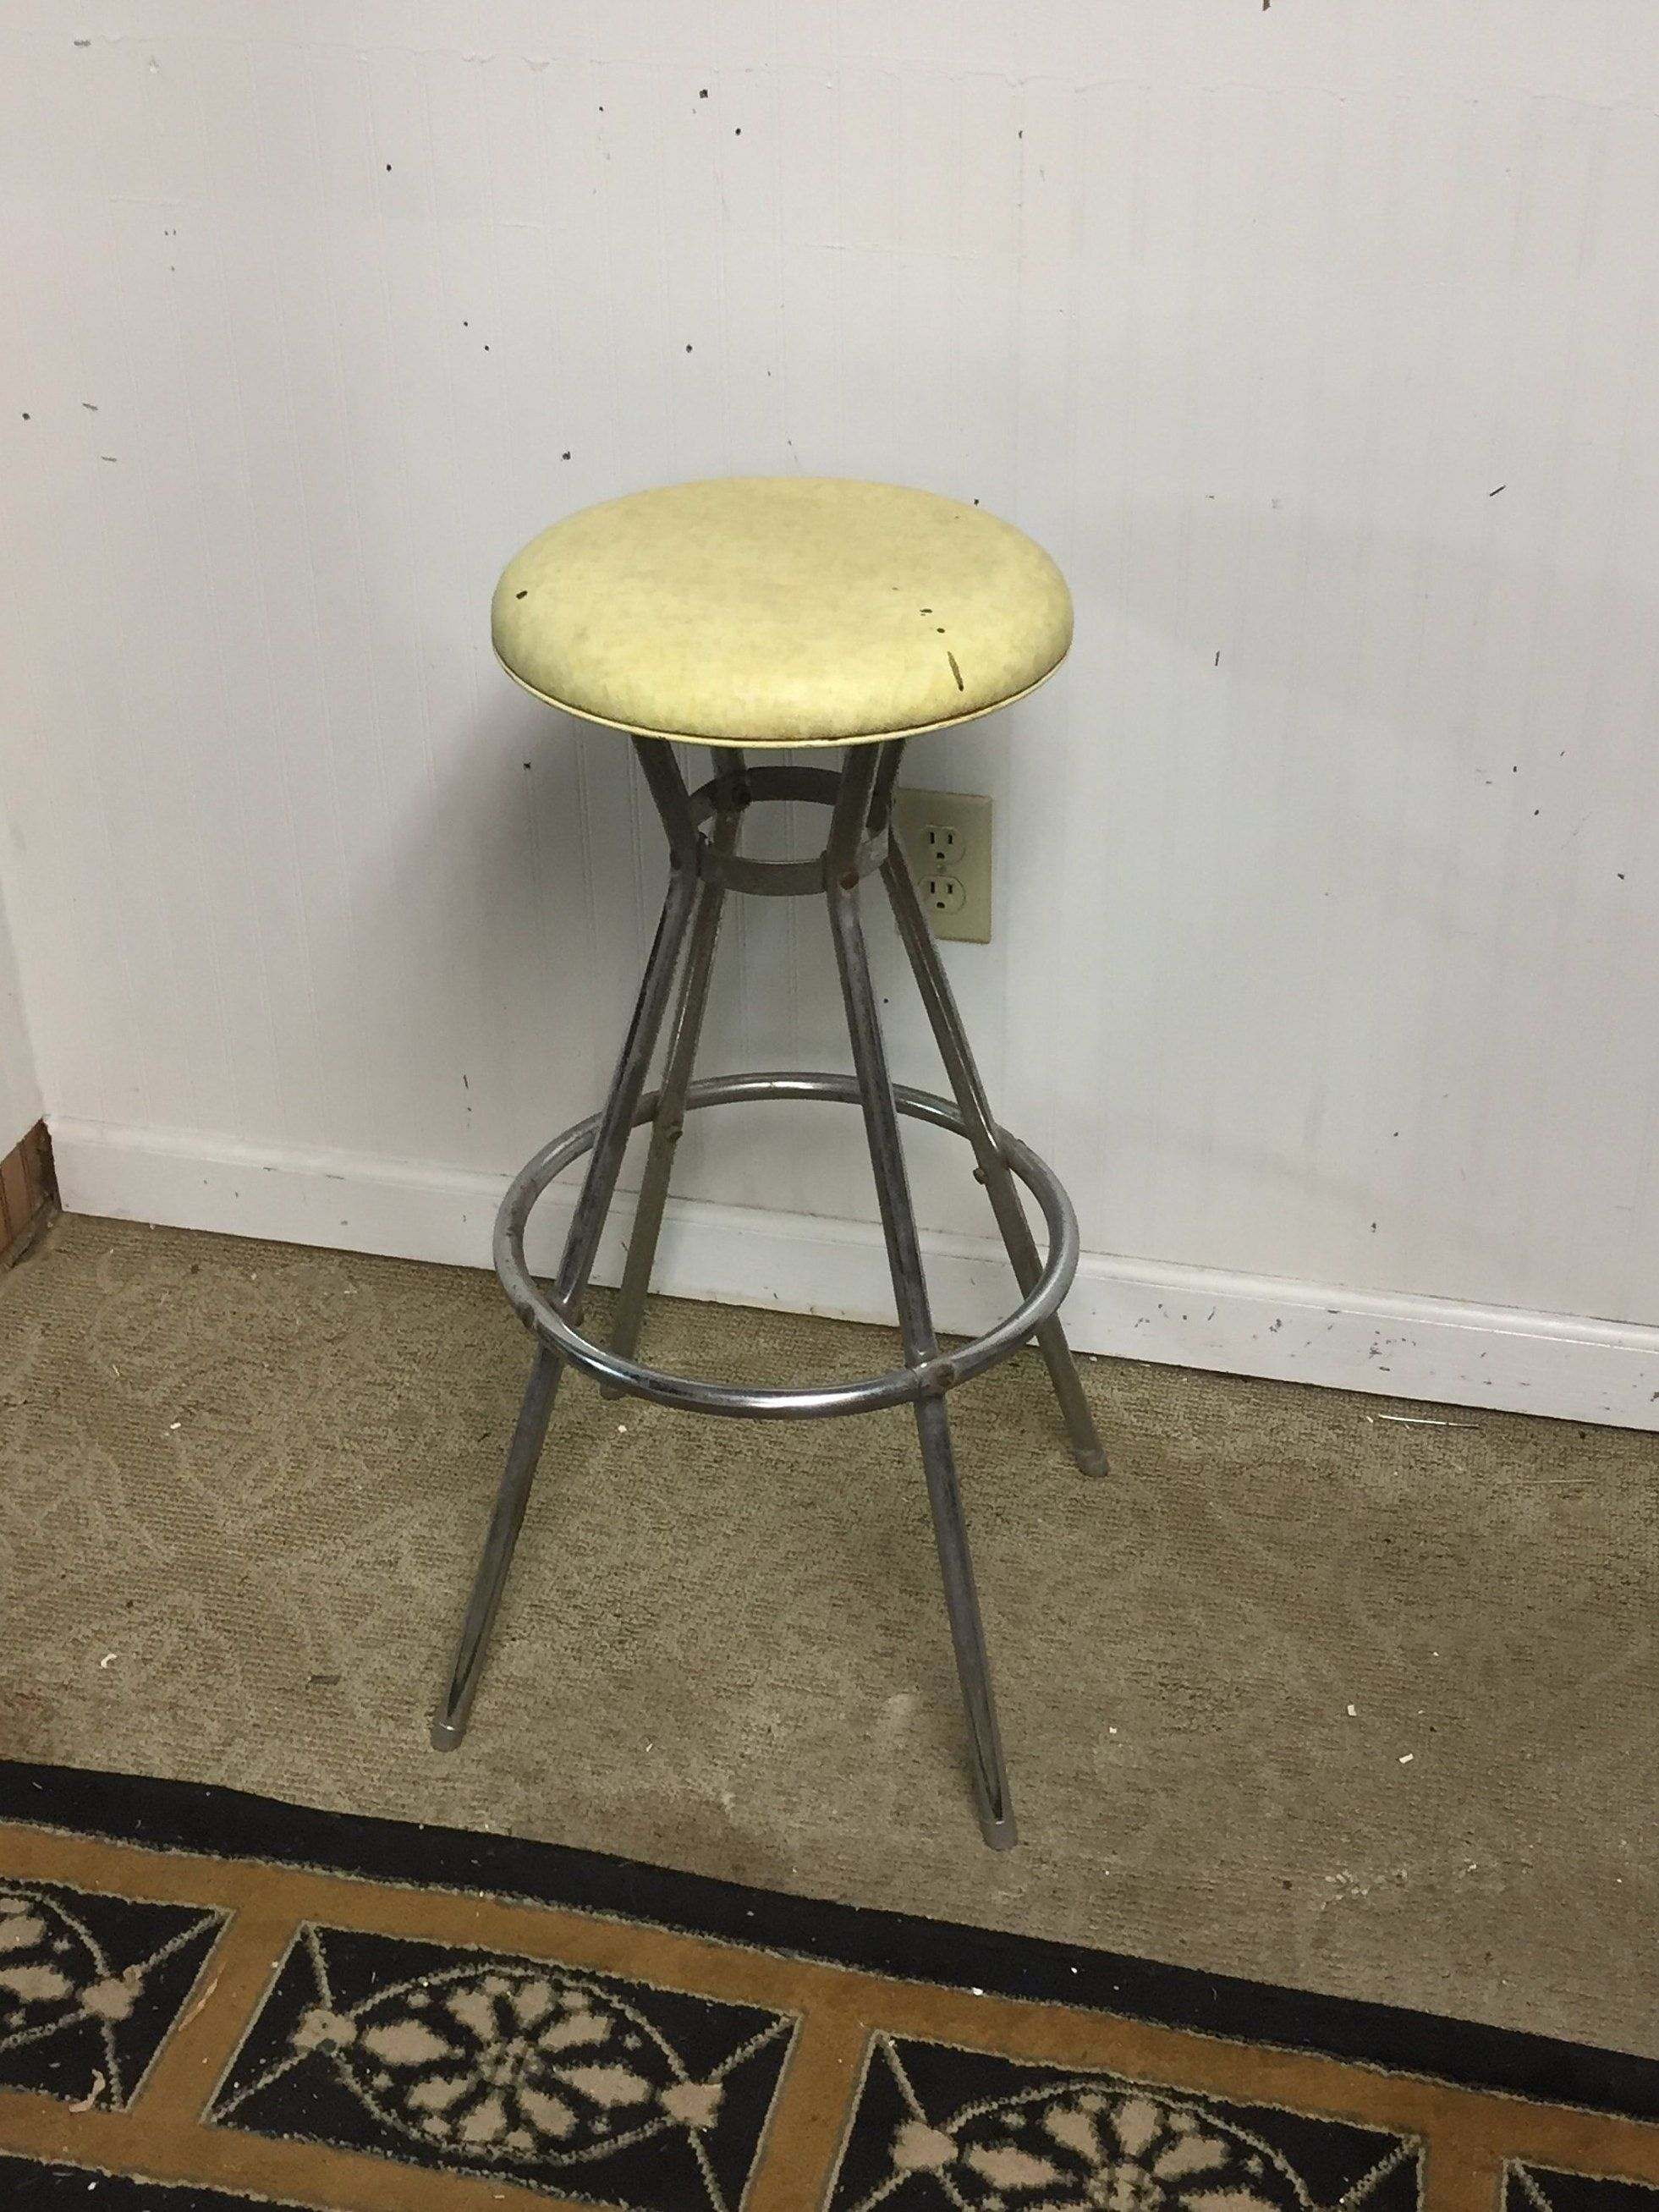 Fantastic Vintage Mid Century Cosco Chrome Kitchen Stool With Yellow Gmtry Best Dining Table And Chair Ideas Images Gmtryco